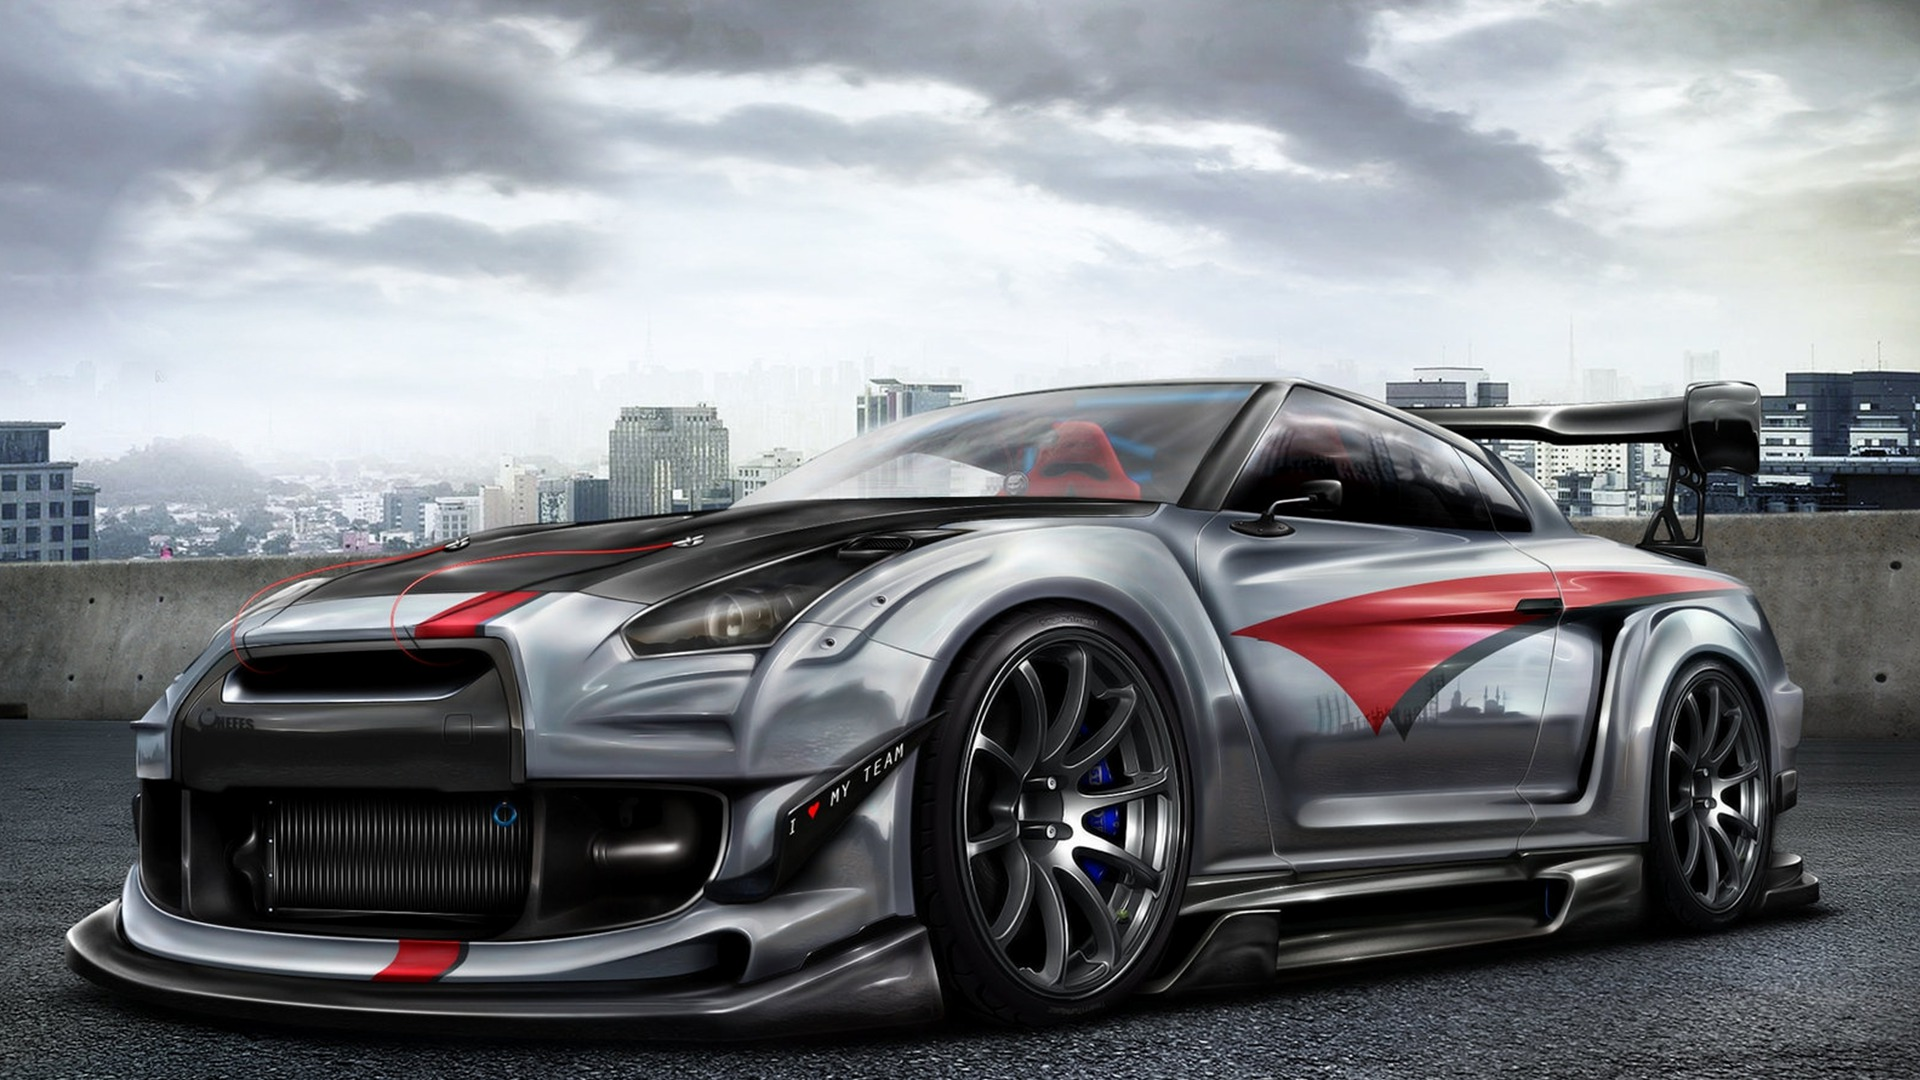 Nissan Skyline GTR R35 Desktop Computers Free Wallpaper